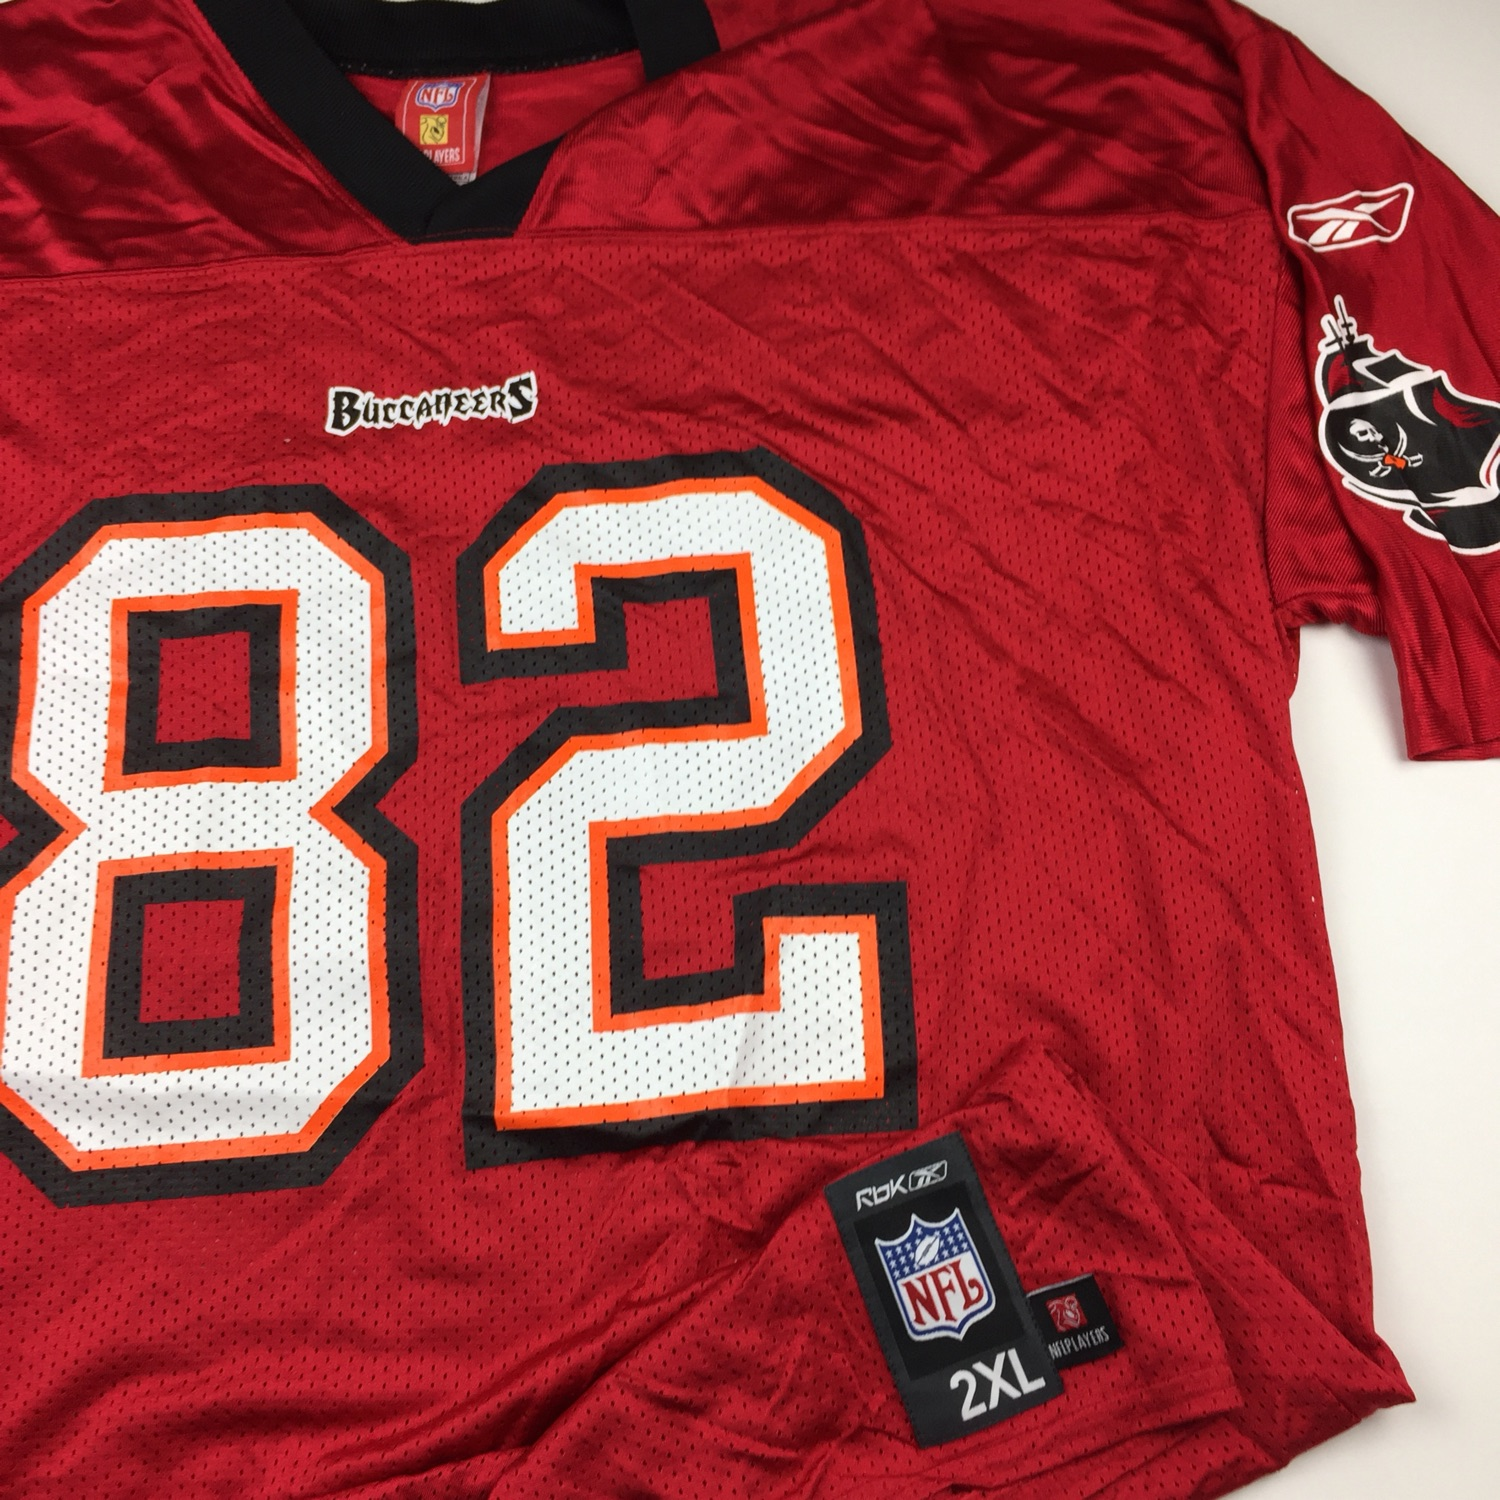 check out 7f8c4 6aea7 Nfl Tampa Bay Buccaneers Winslow Football Jersey